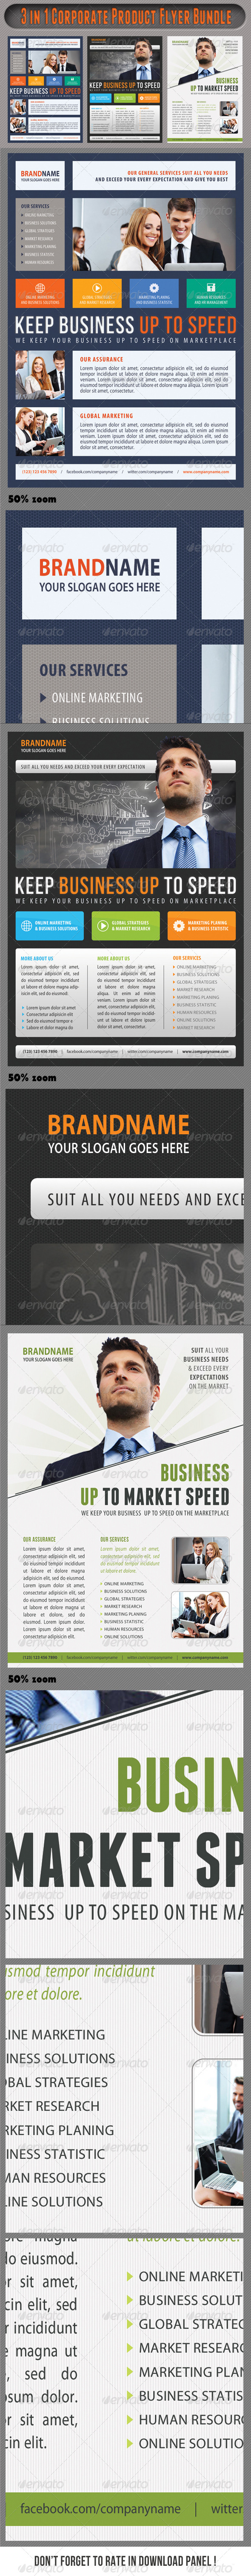 GraphicRiver 3 in 1 Corporate Flyers Bundle 12 7460742